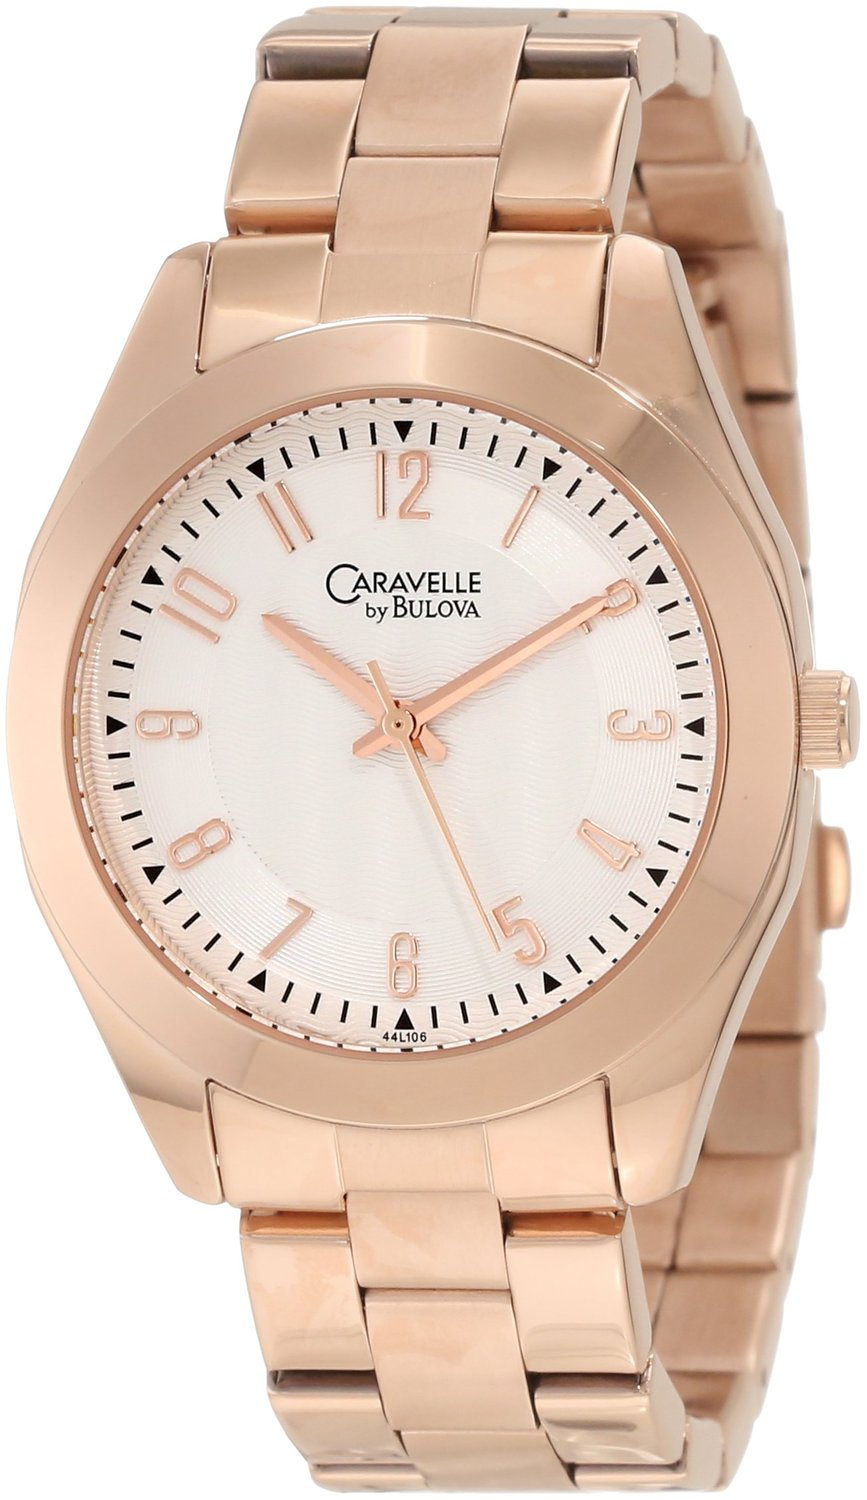 Amazon.com: Caravelle by Bulova Women's 44L106 Classic Rose Gold-Tone Watch: Watches